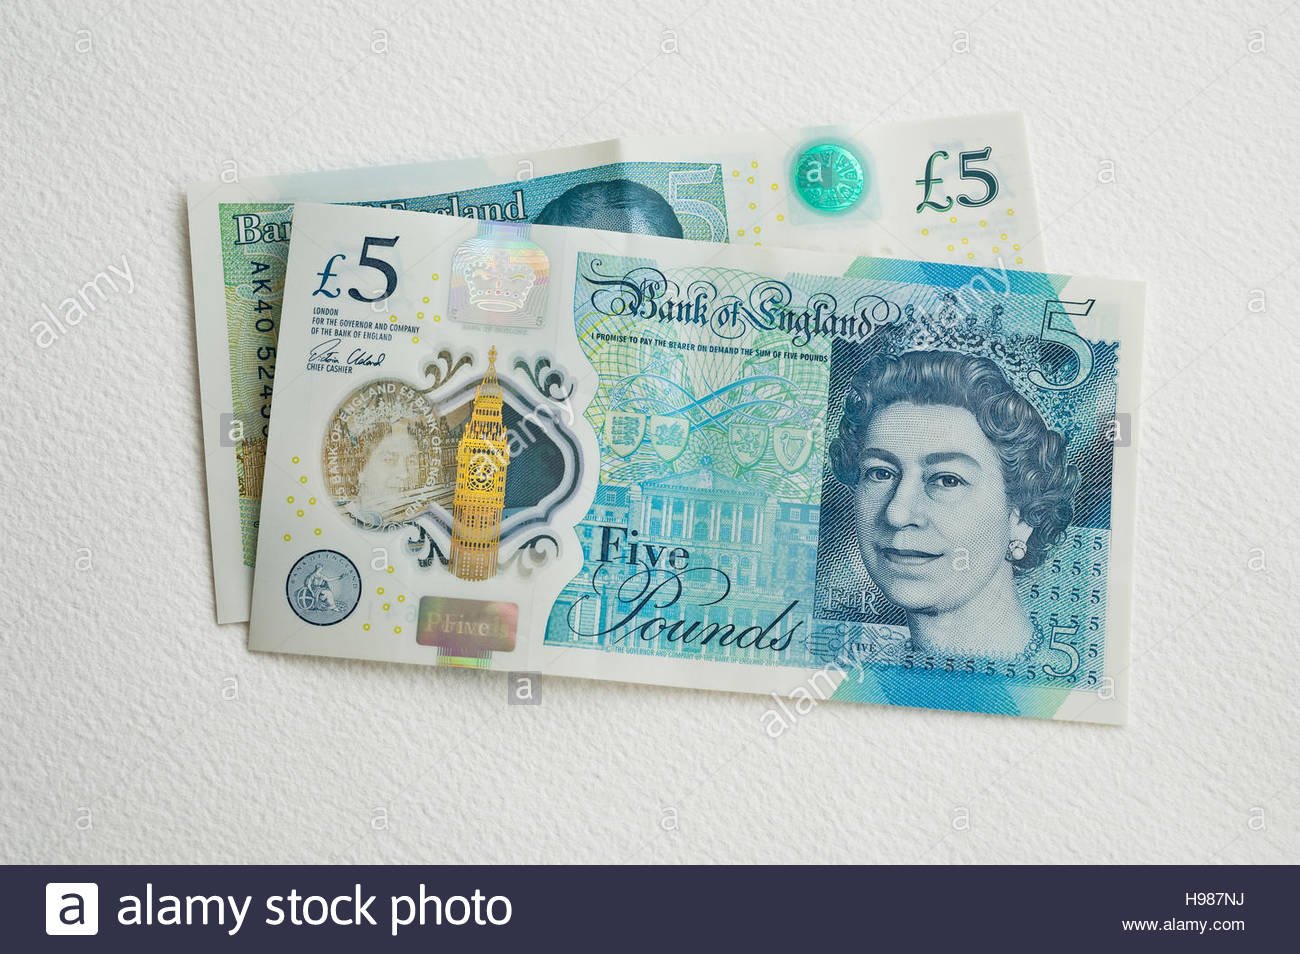 Two new British sterling five pound notes with security features, see-through window and metallic image. - Stock Image